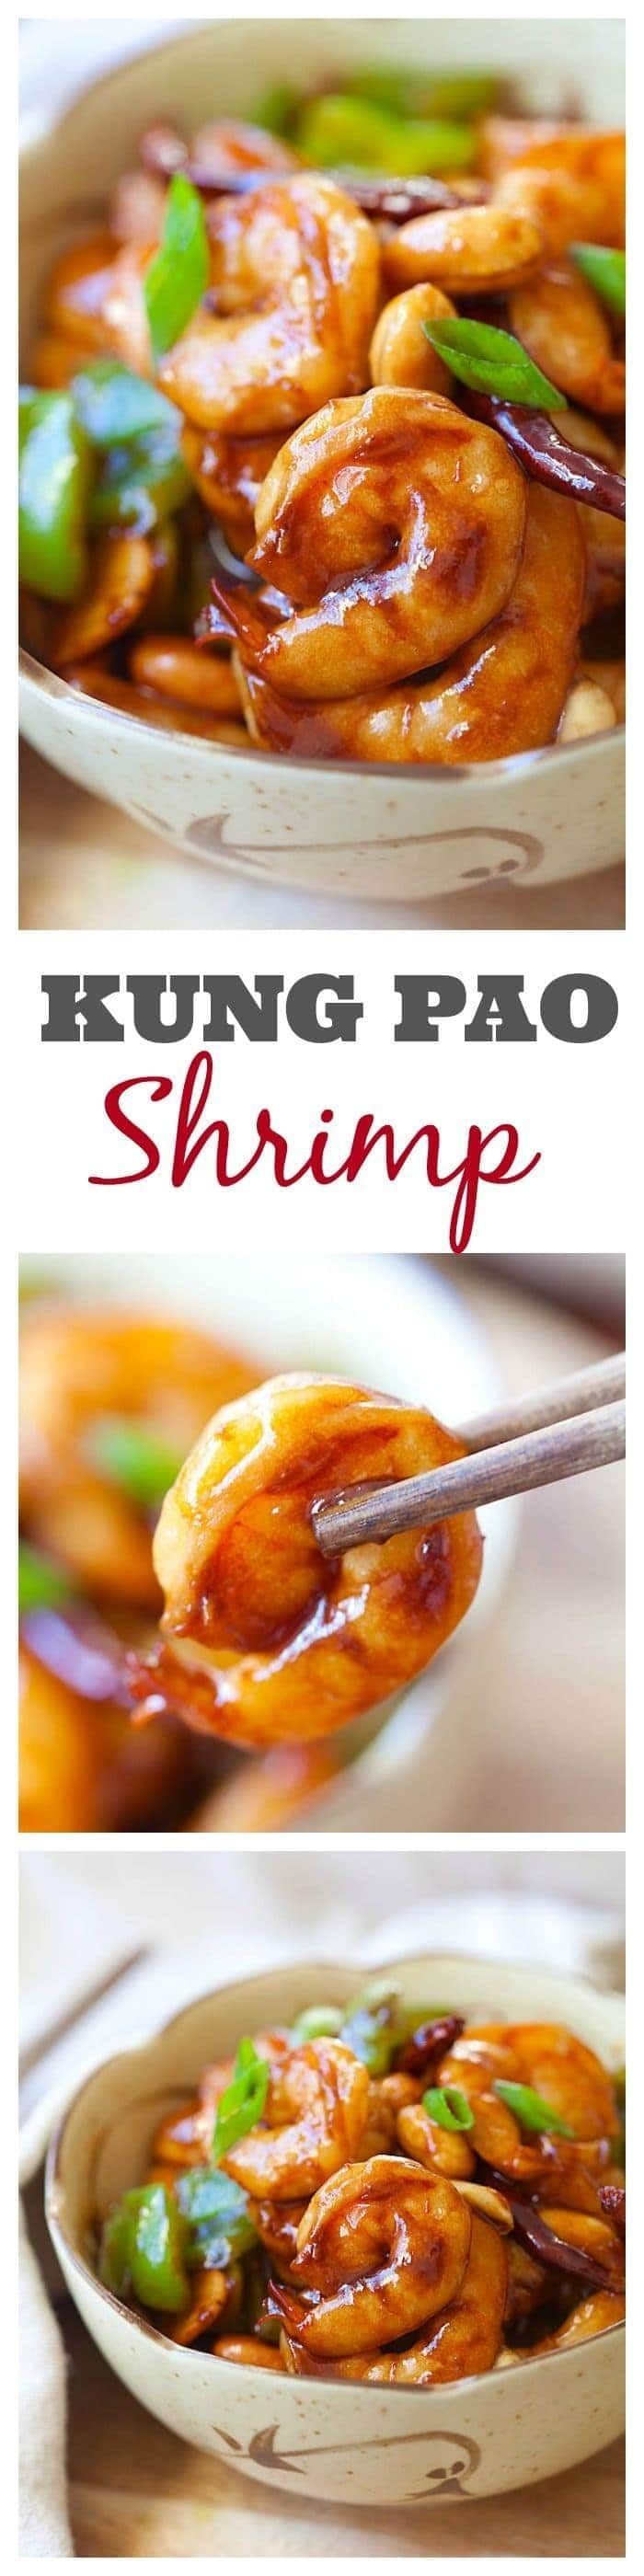 {Chinese new year} Kung Pao Shrimp recipe that is super easy to make at home, less than 30 minutes but much better and healthier than Kung Pao Shrimp takeout from restaurants | rasamalaysia.com